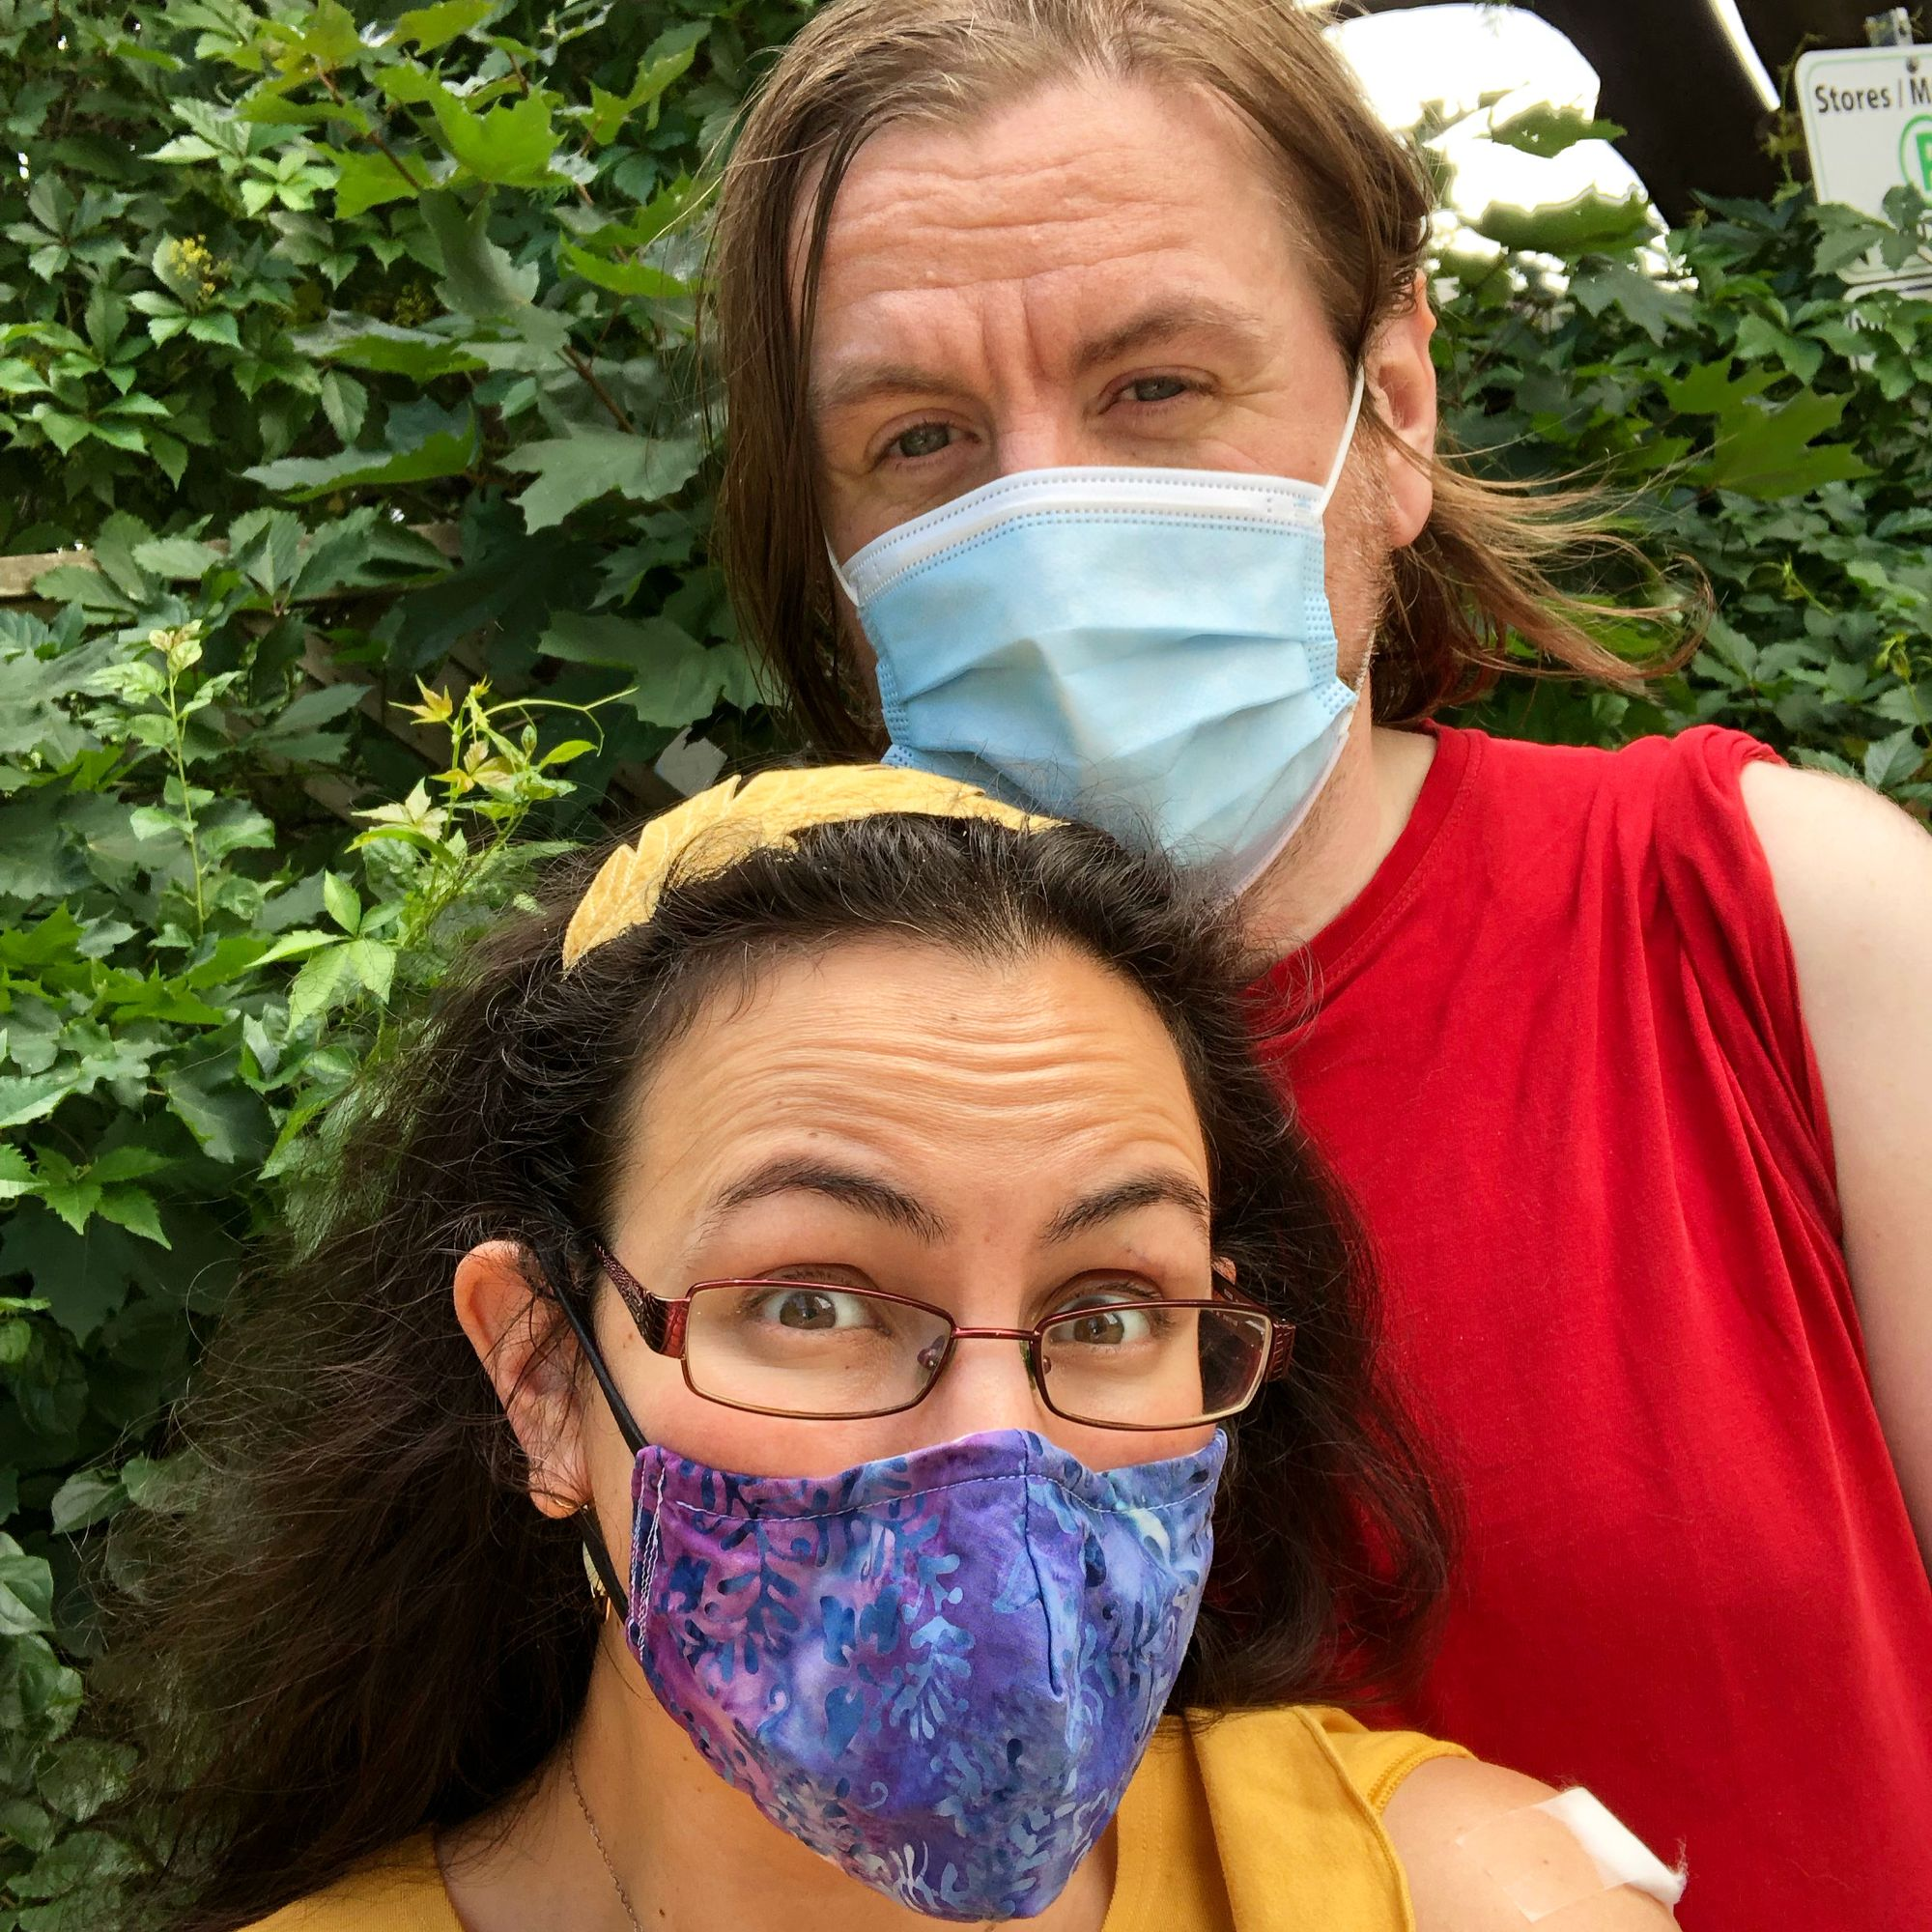 Selfie of me and my husband against a background of green foliage. I'm in the foreground, wearing a bright yellow shirt and yellow headband shaped like an oak leaf in my dark brown hair, with glasses and a purple gradient handmade mask on; Stu is a head taller than me, with shoulder-length light brown hair, and wearing a red shirt and a pale blue surgical mask. We both have our left sleeves rolled up to show off our band-aids.